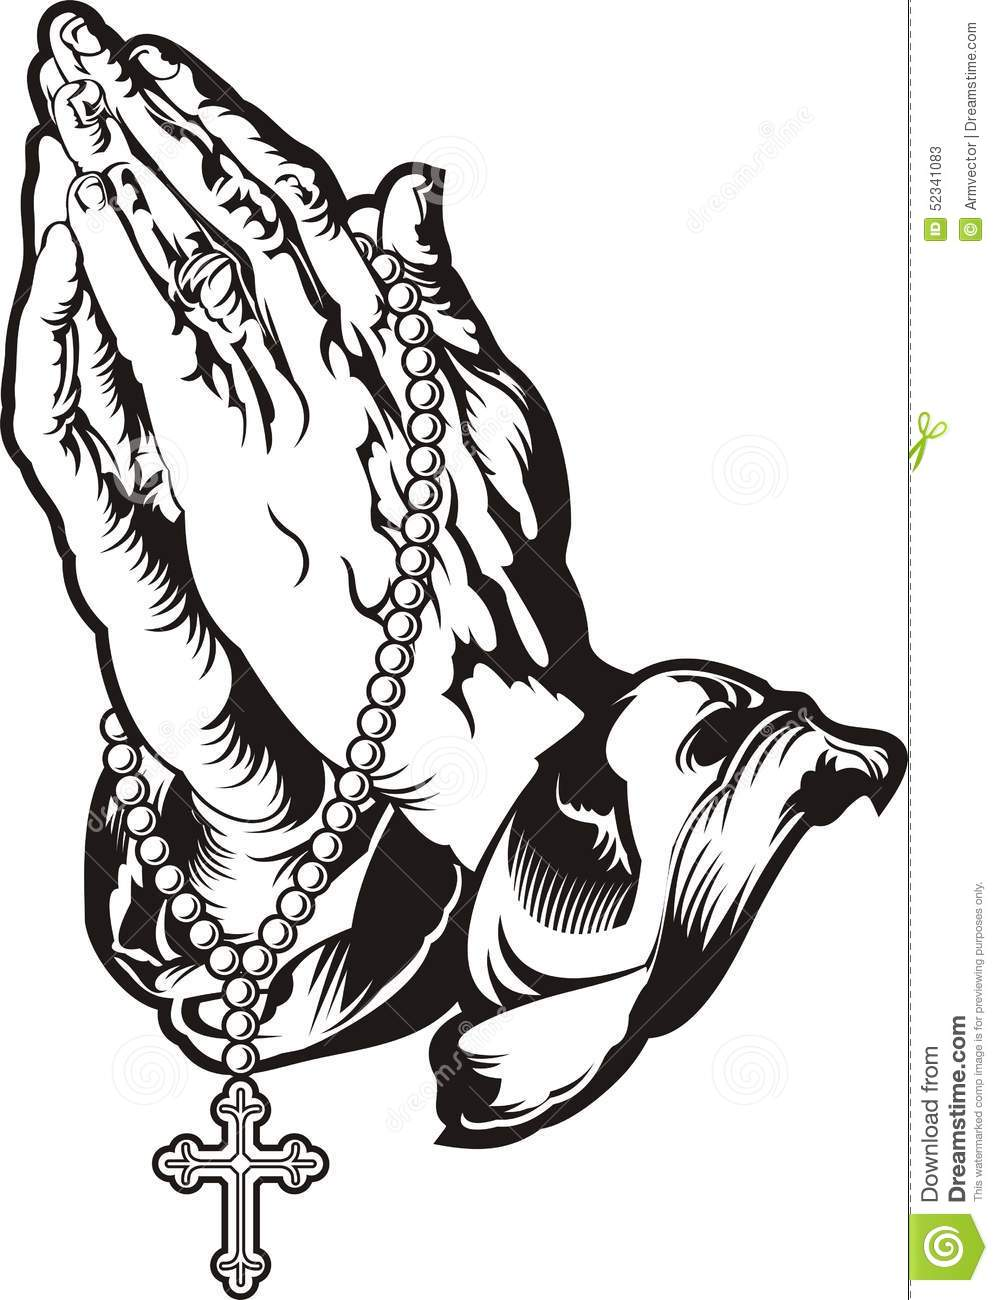 praying hands with rosary tattoo stock vector image child praying clipart image child praying clip art free